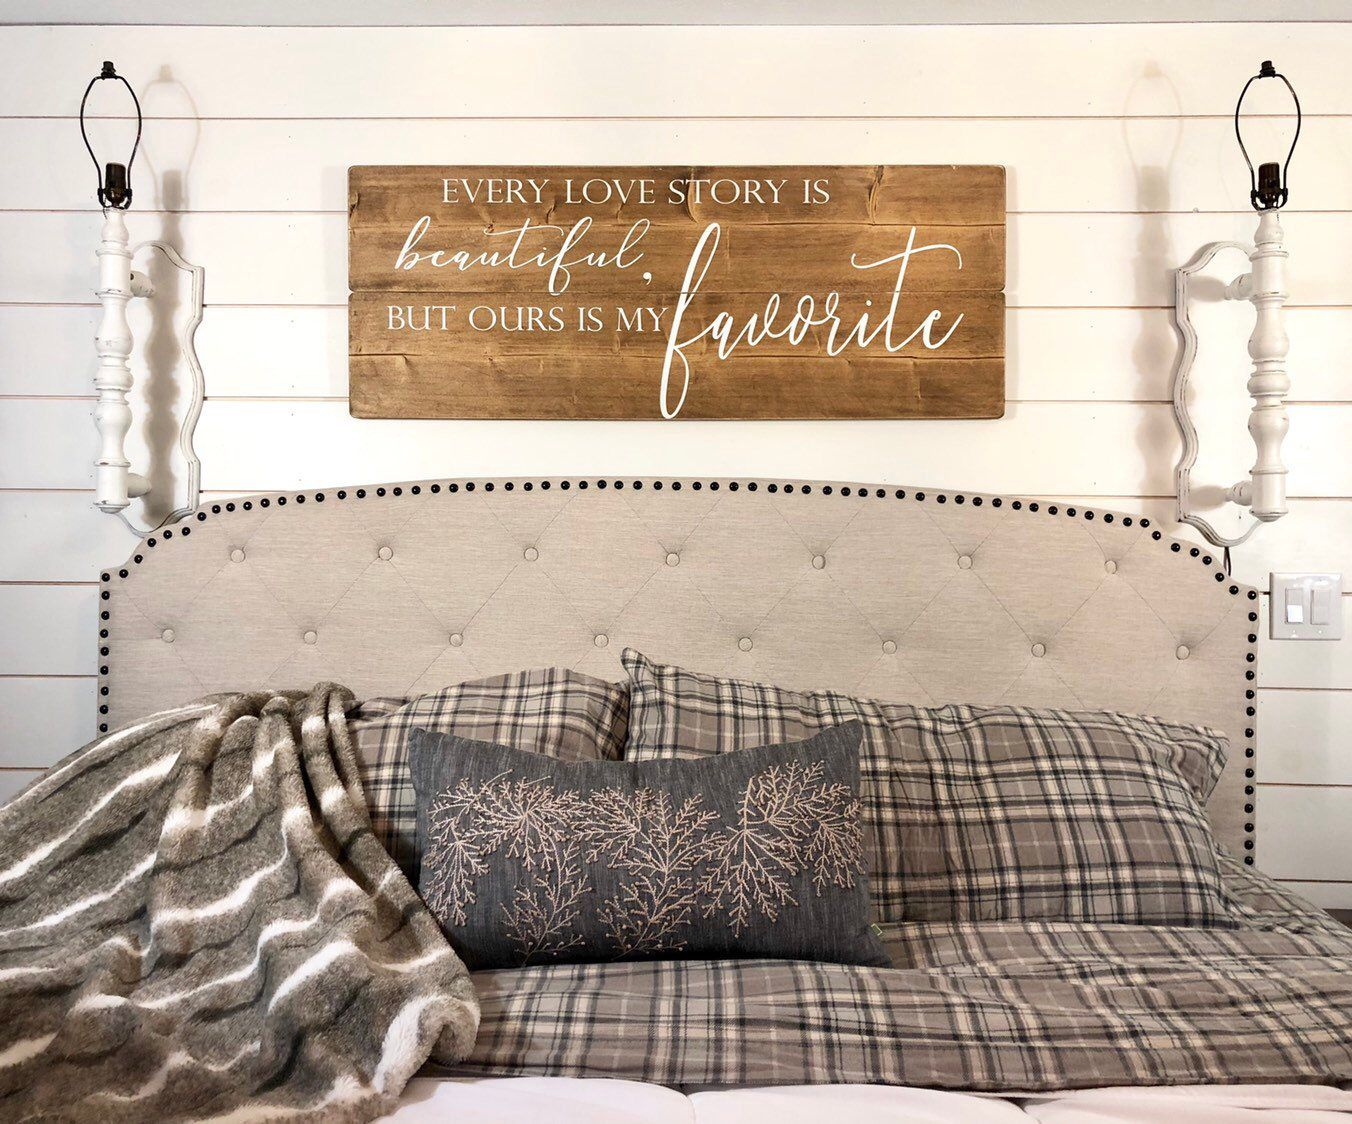 Bedroom Wall Decor Every Love Story Is Beautiful But Our Is My Favorite Big Bedroom Sign Rustic Wood Si Wall Decor Bedroom Rustic Wood Signs Big Bedrooms